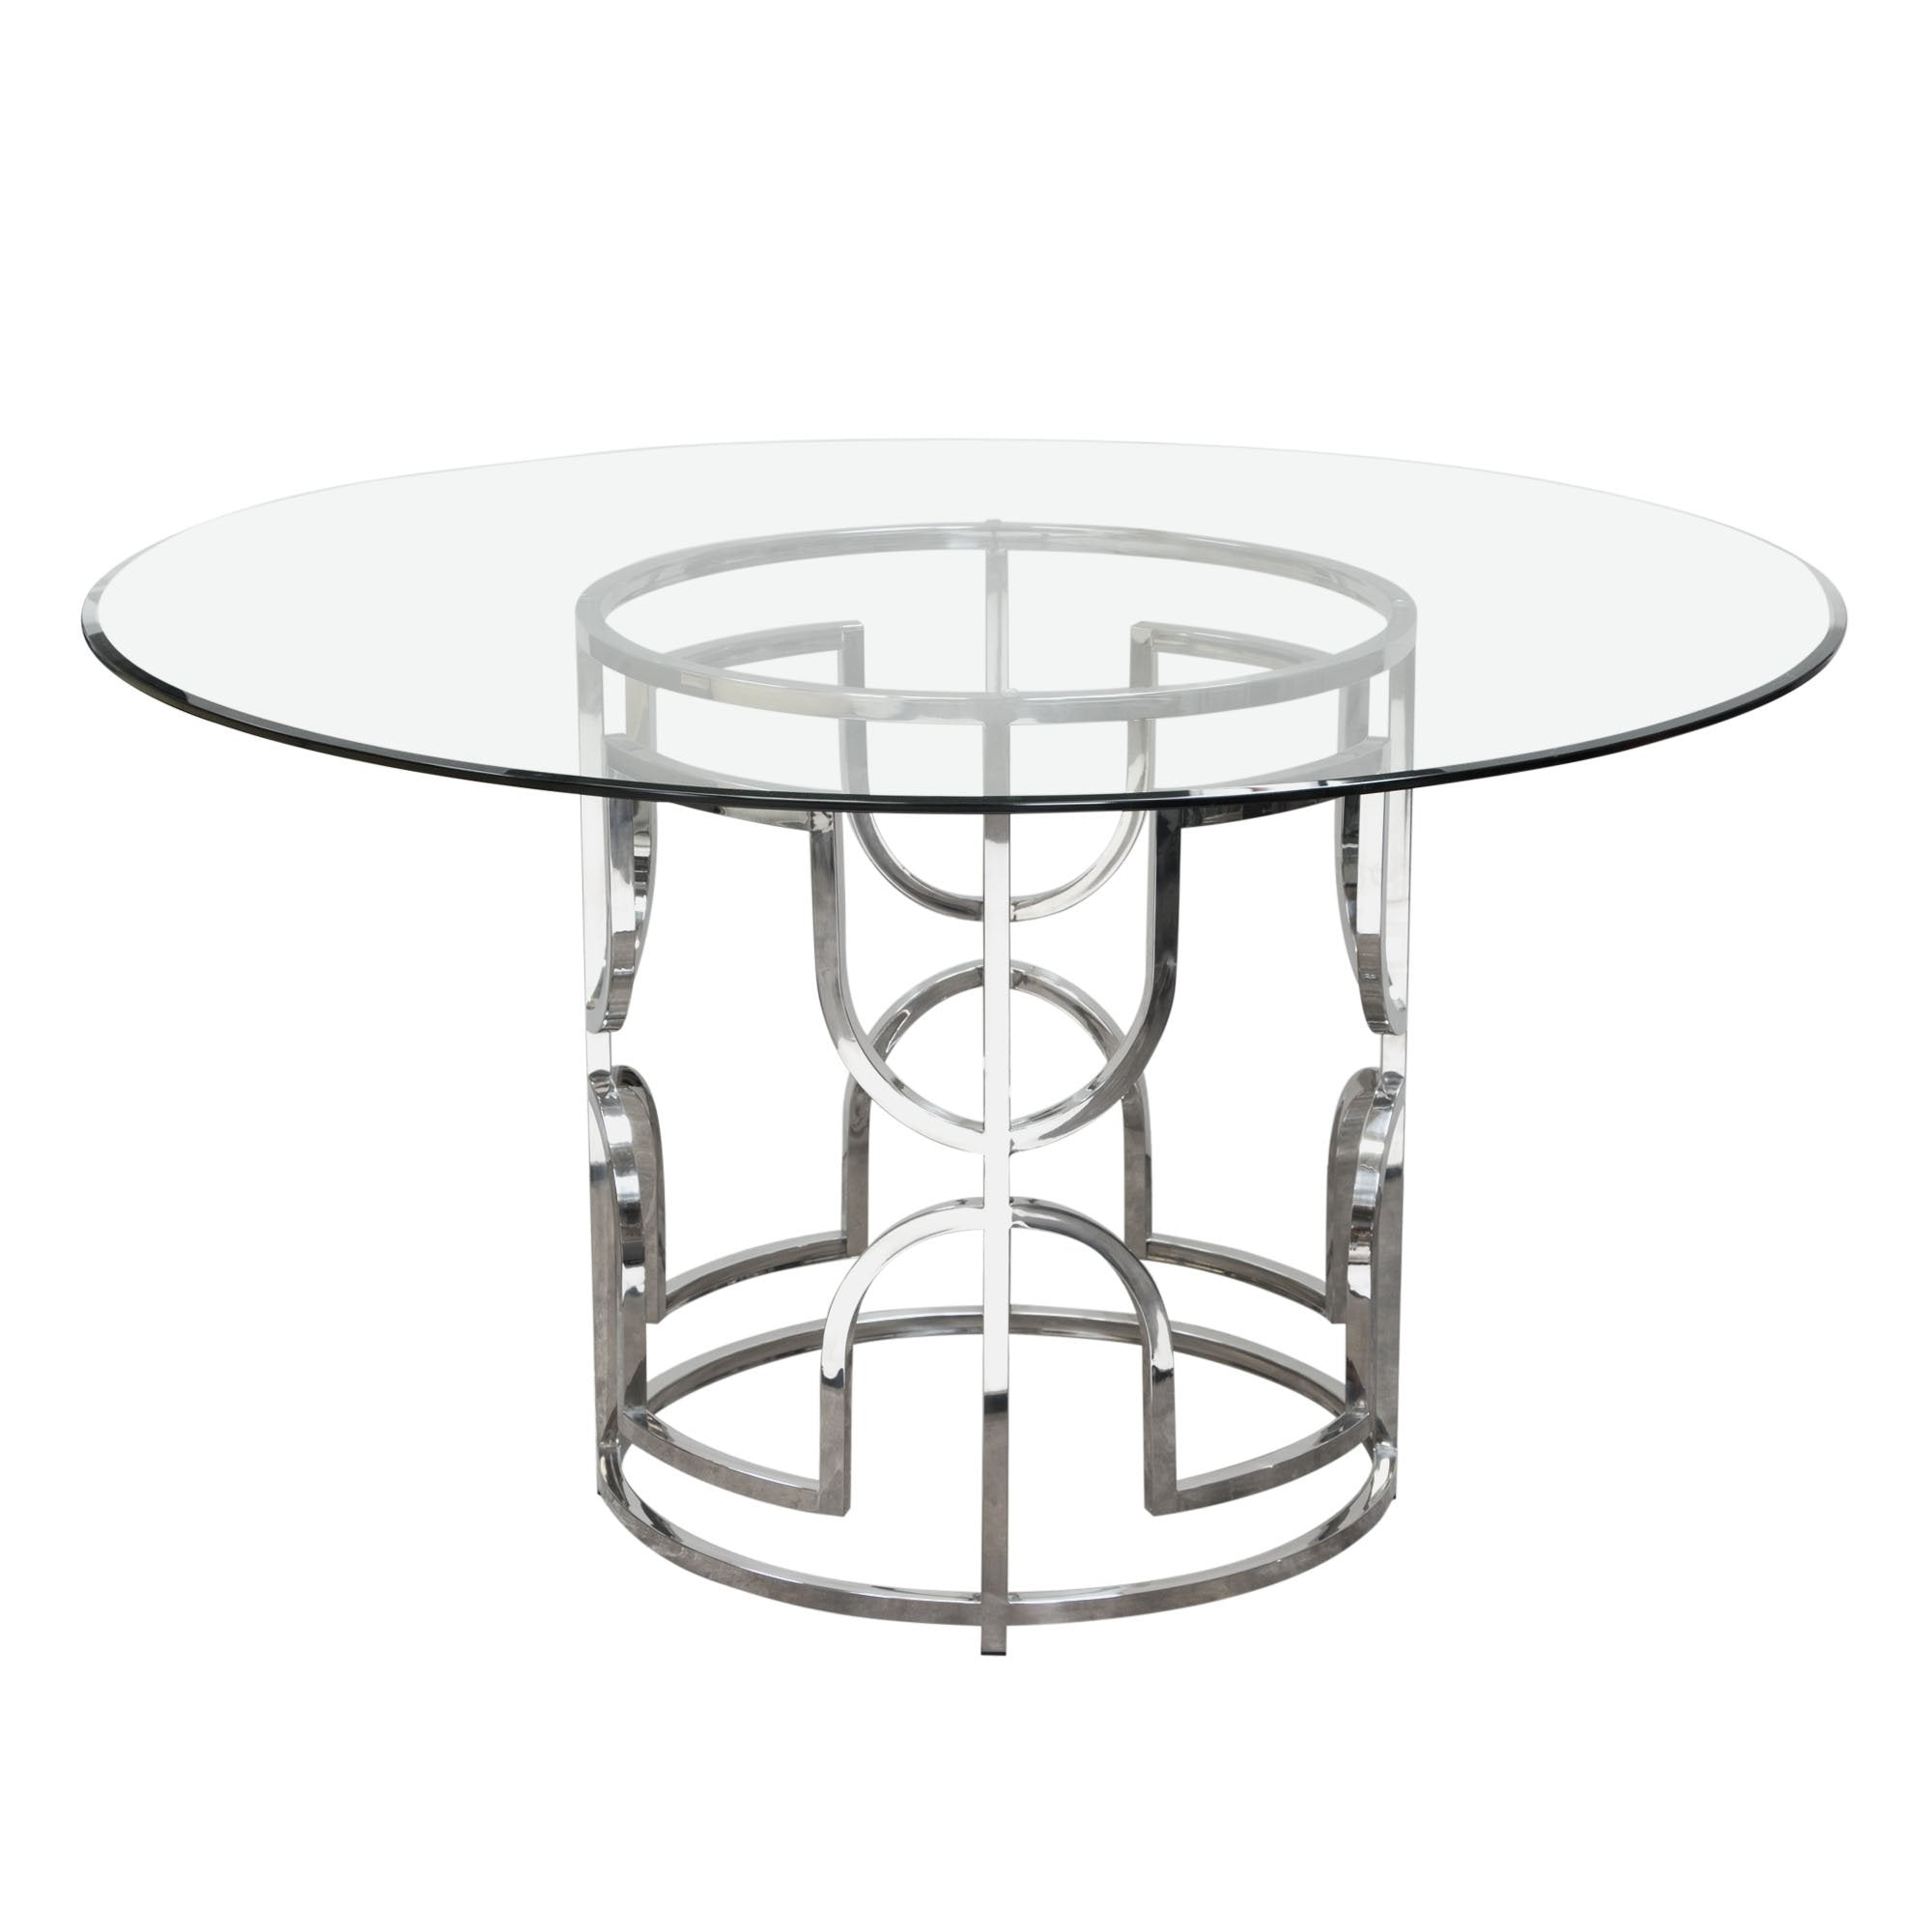 "Avalon 54"" Round Glass Top Dining Table"